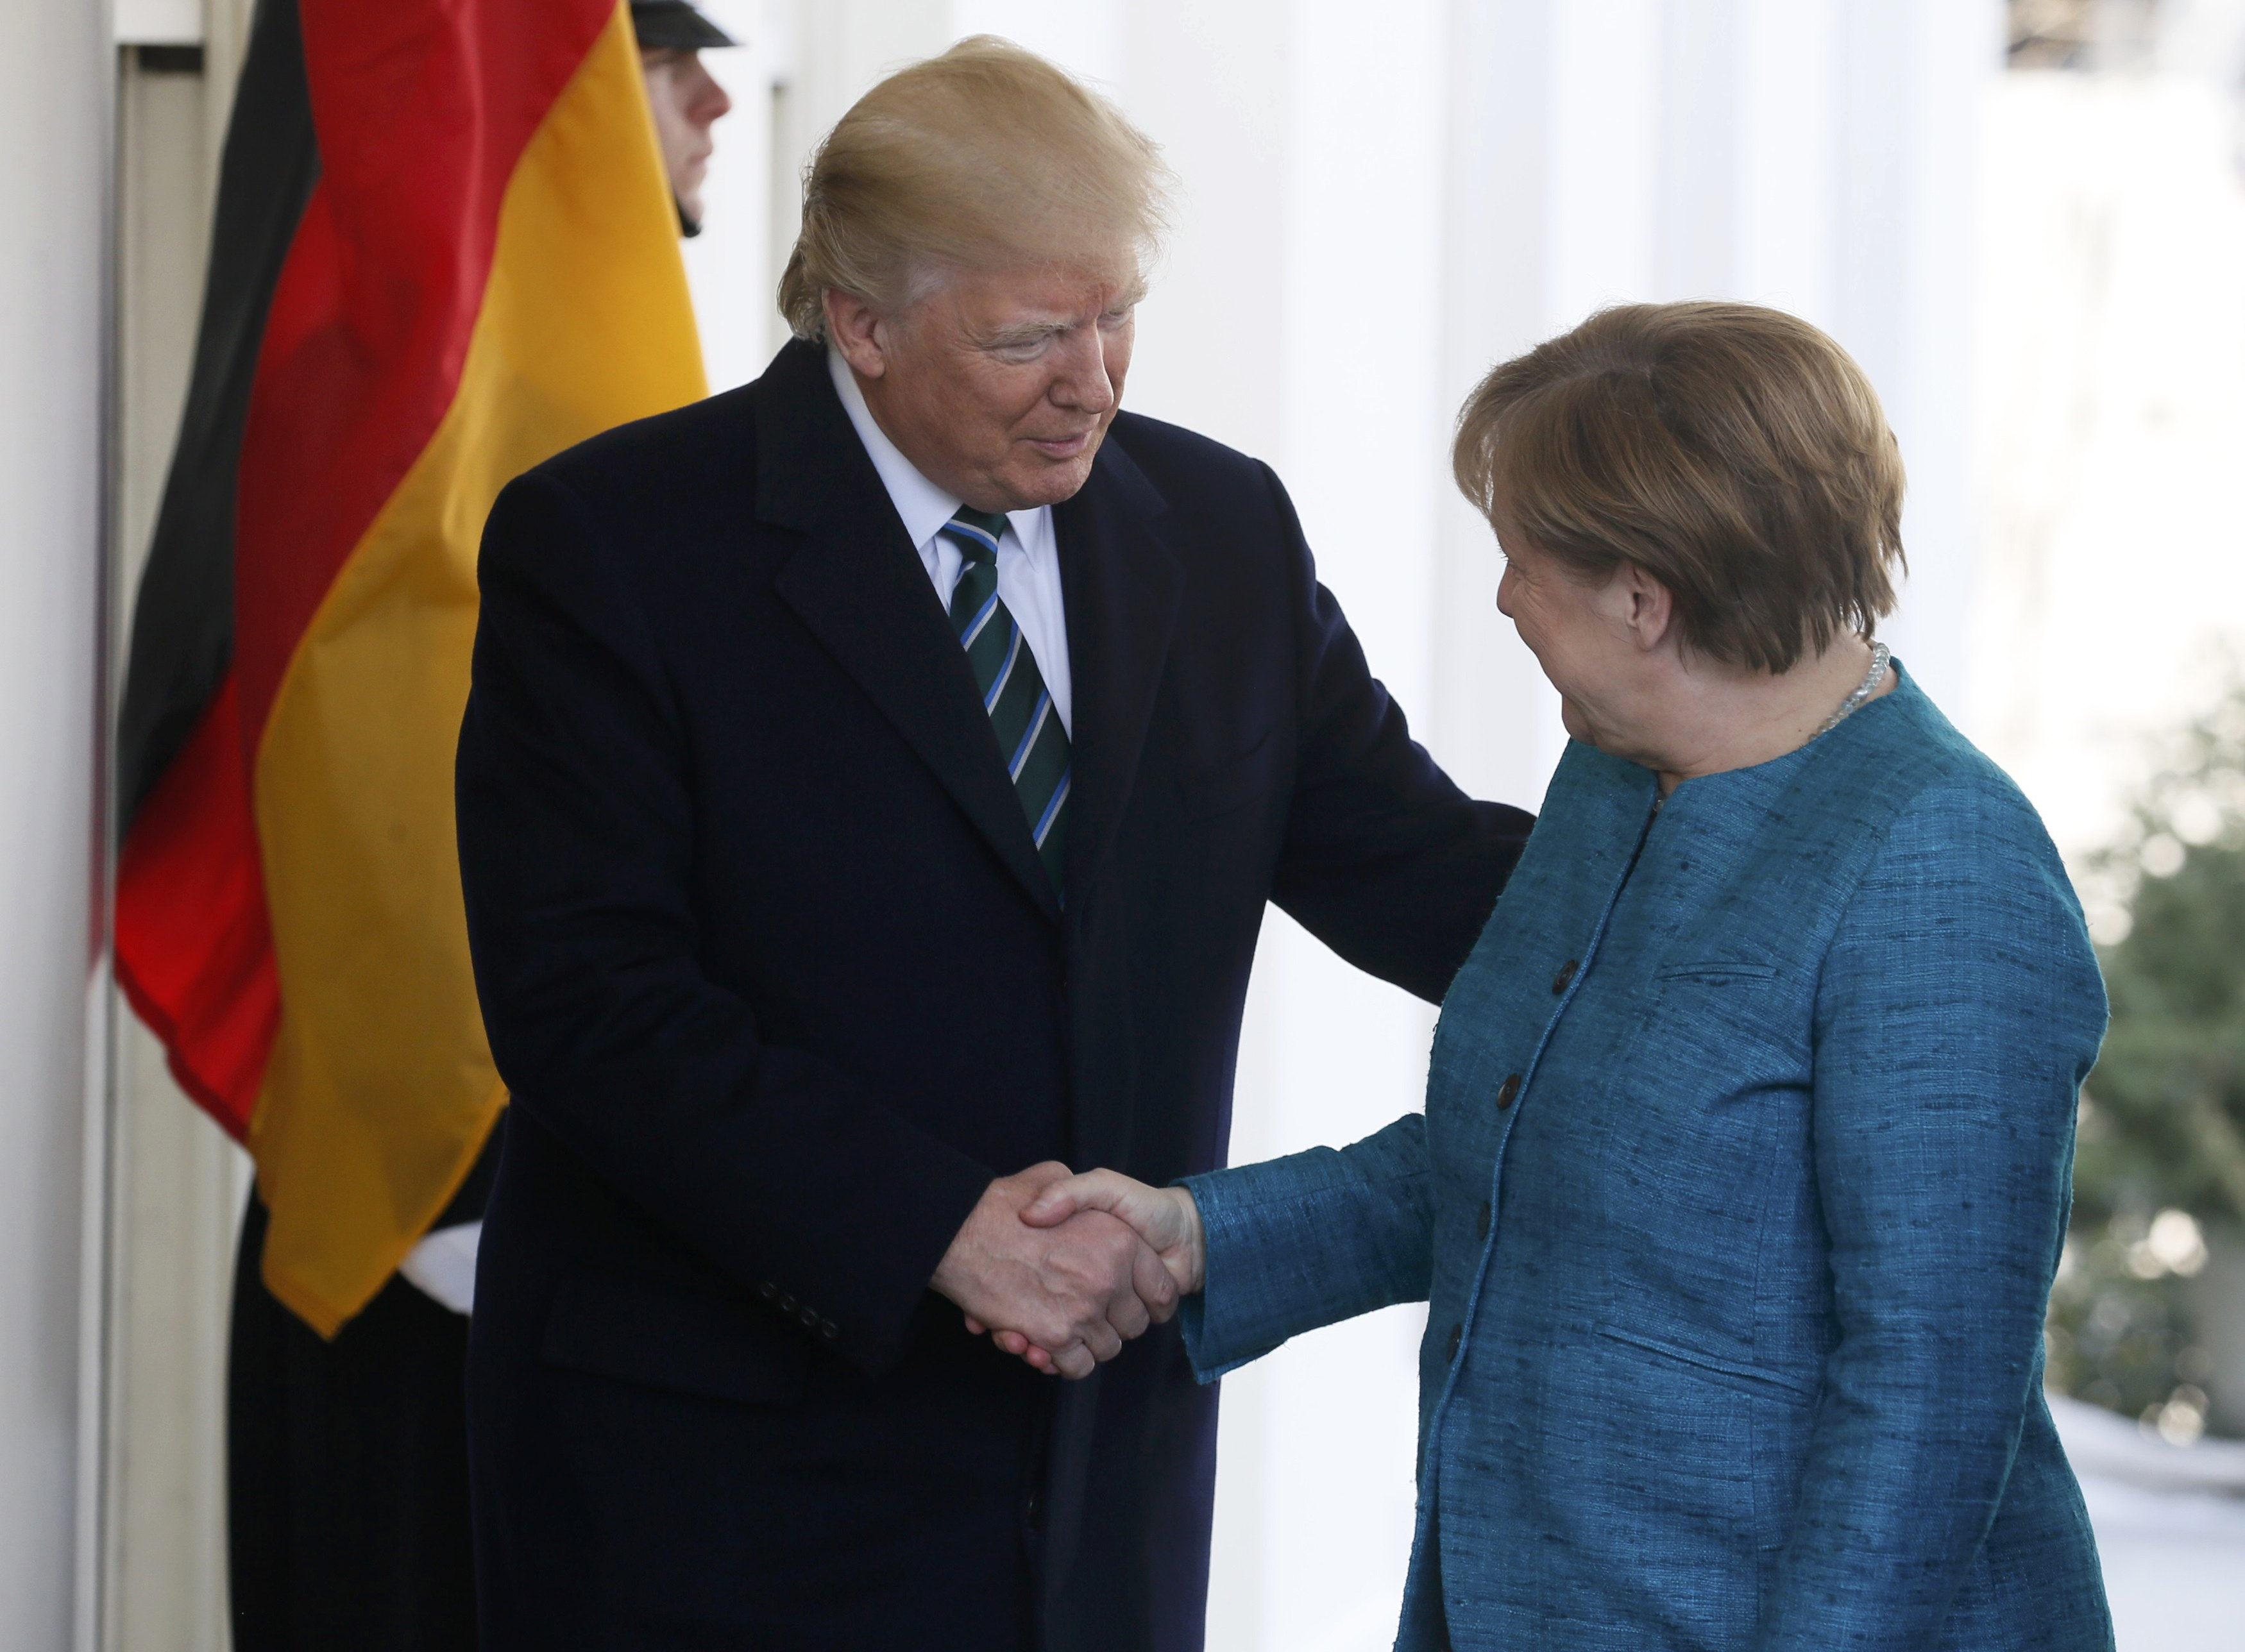 President Trump welcomes German Chancellor Angela Merkel at the White House.   (REUTERS/Jim Bourg)